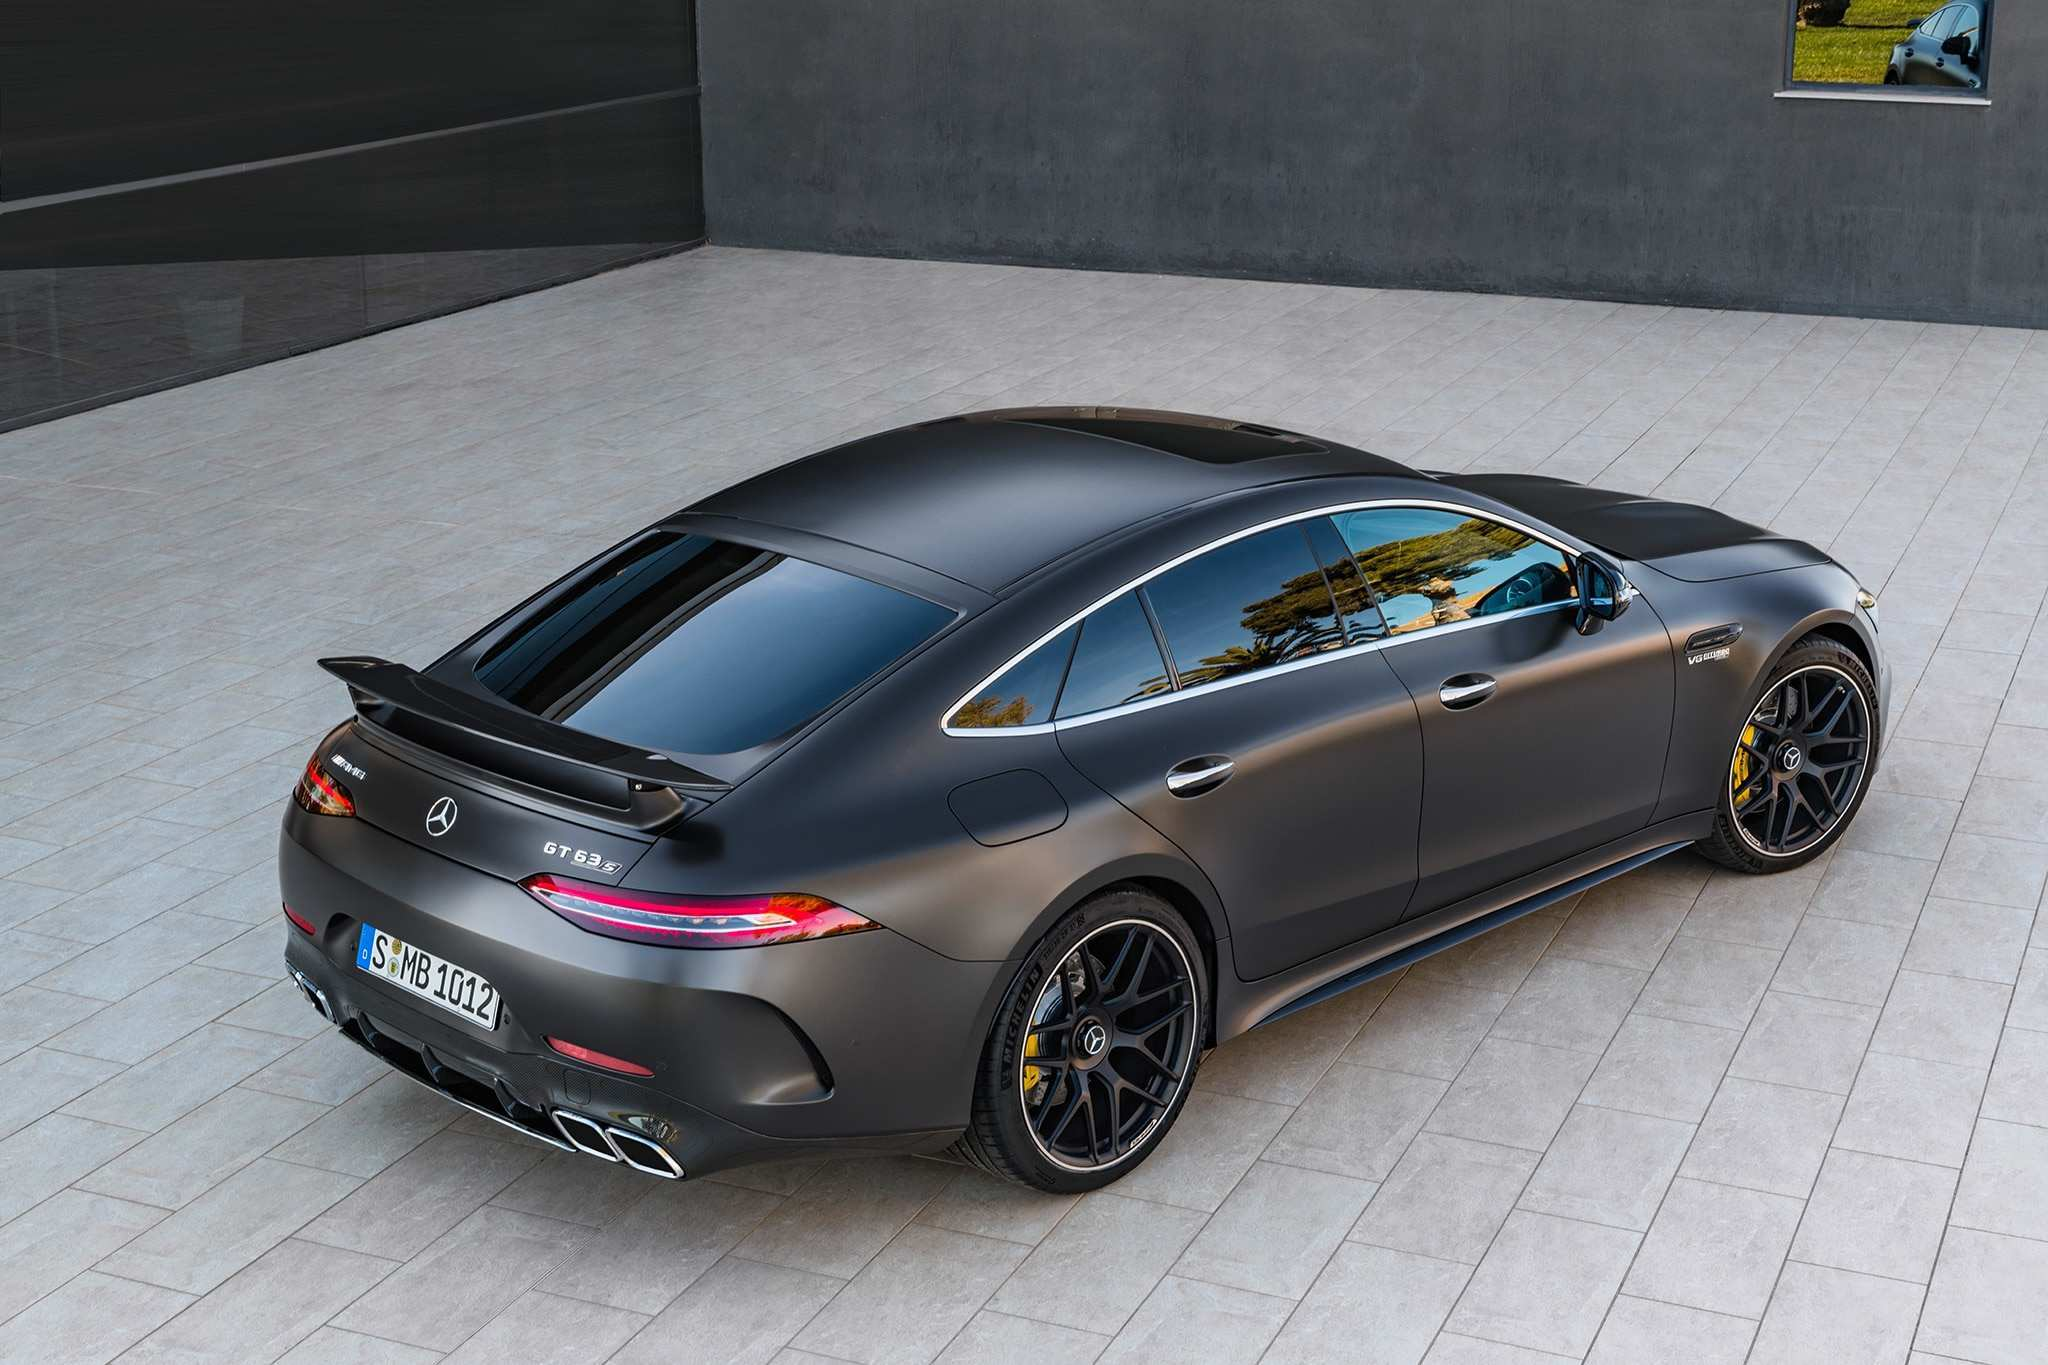 89 Best Review Mercedes 2019 Amg Gt4 Release Date with Mercedes 2019 Amg Gt4